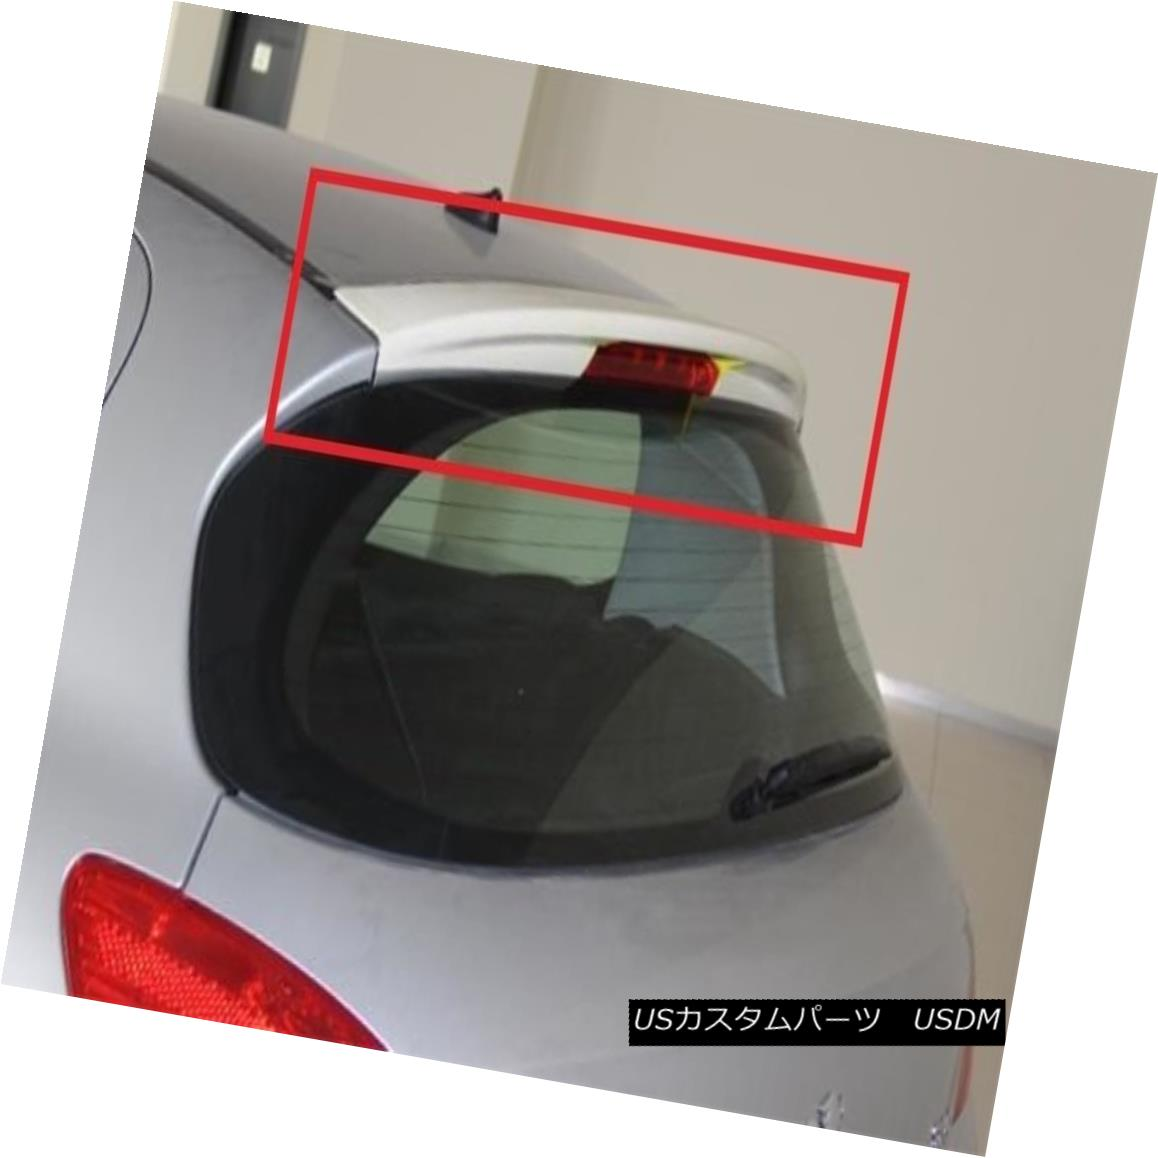 エアロパーツ PEUGEOT 308 3 OR 5 DOORS REAR ROOF SPOILER NEW PEUGEOT 308 3 OR 5 DOORSリアルーフスポイラーNEW